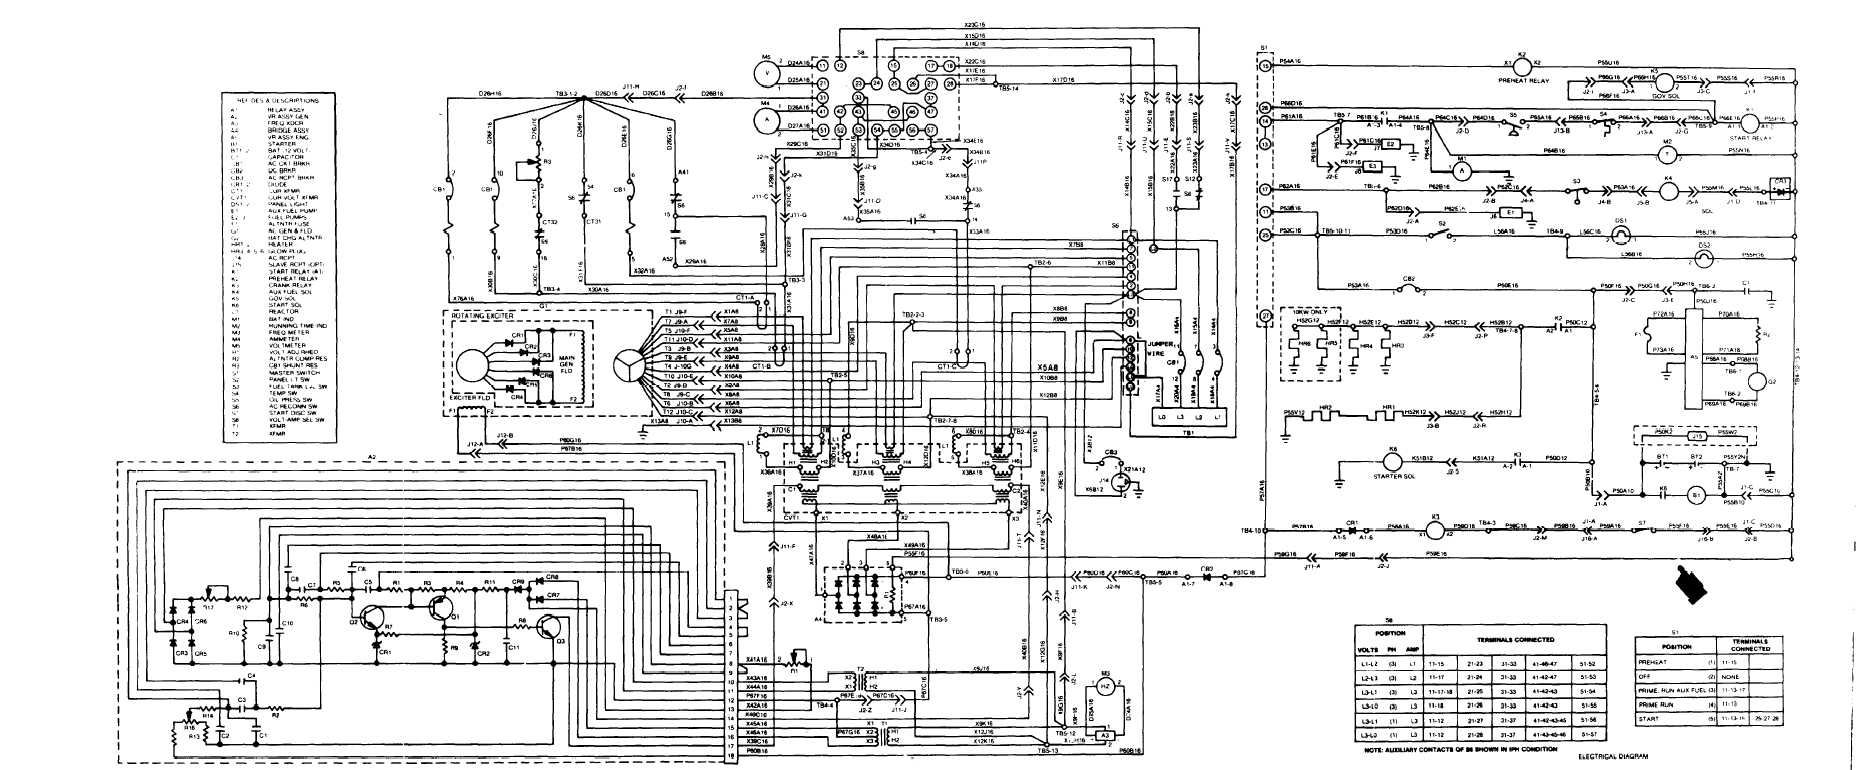 11 Hp Briggs And Stratton Wiring Diagram Figure 1 7 Generator Set Electrical Schematic